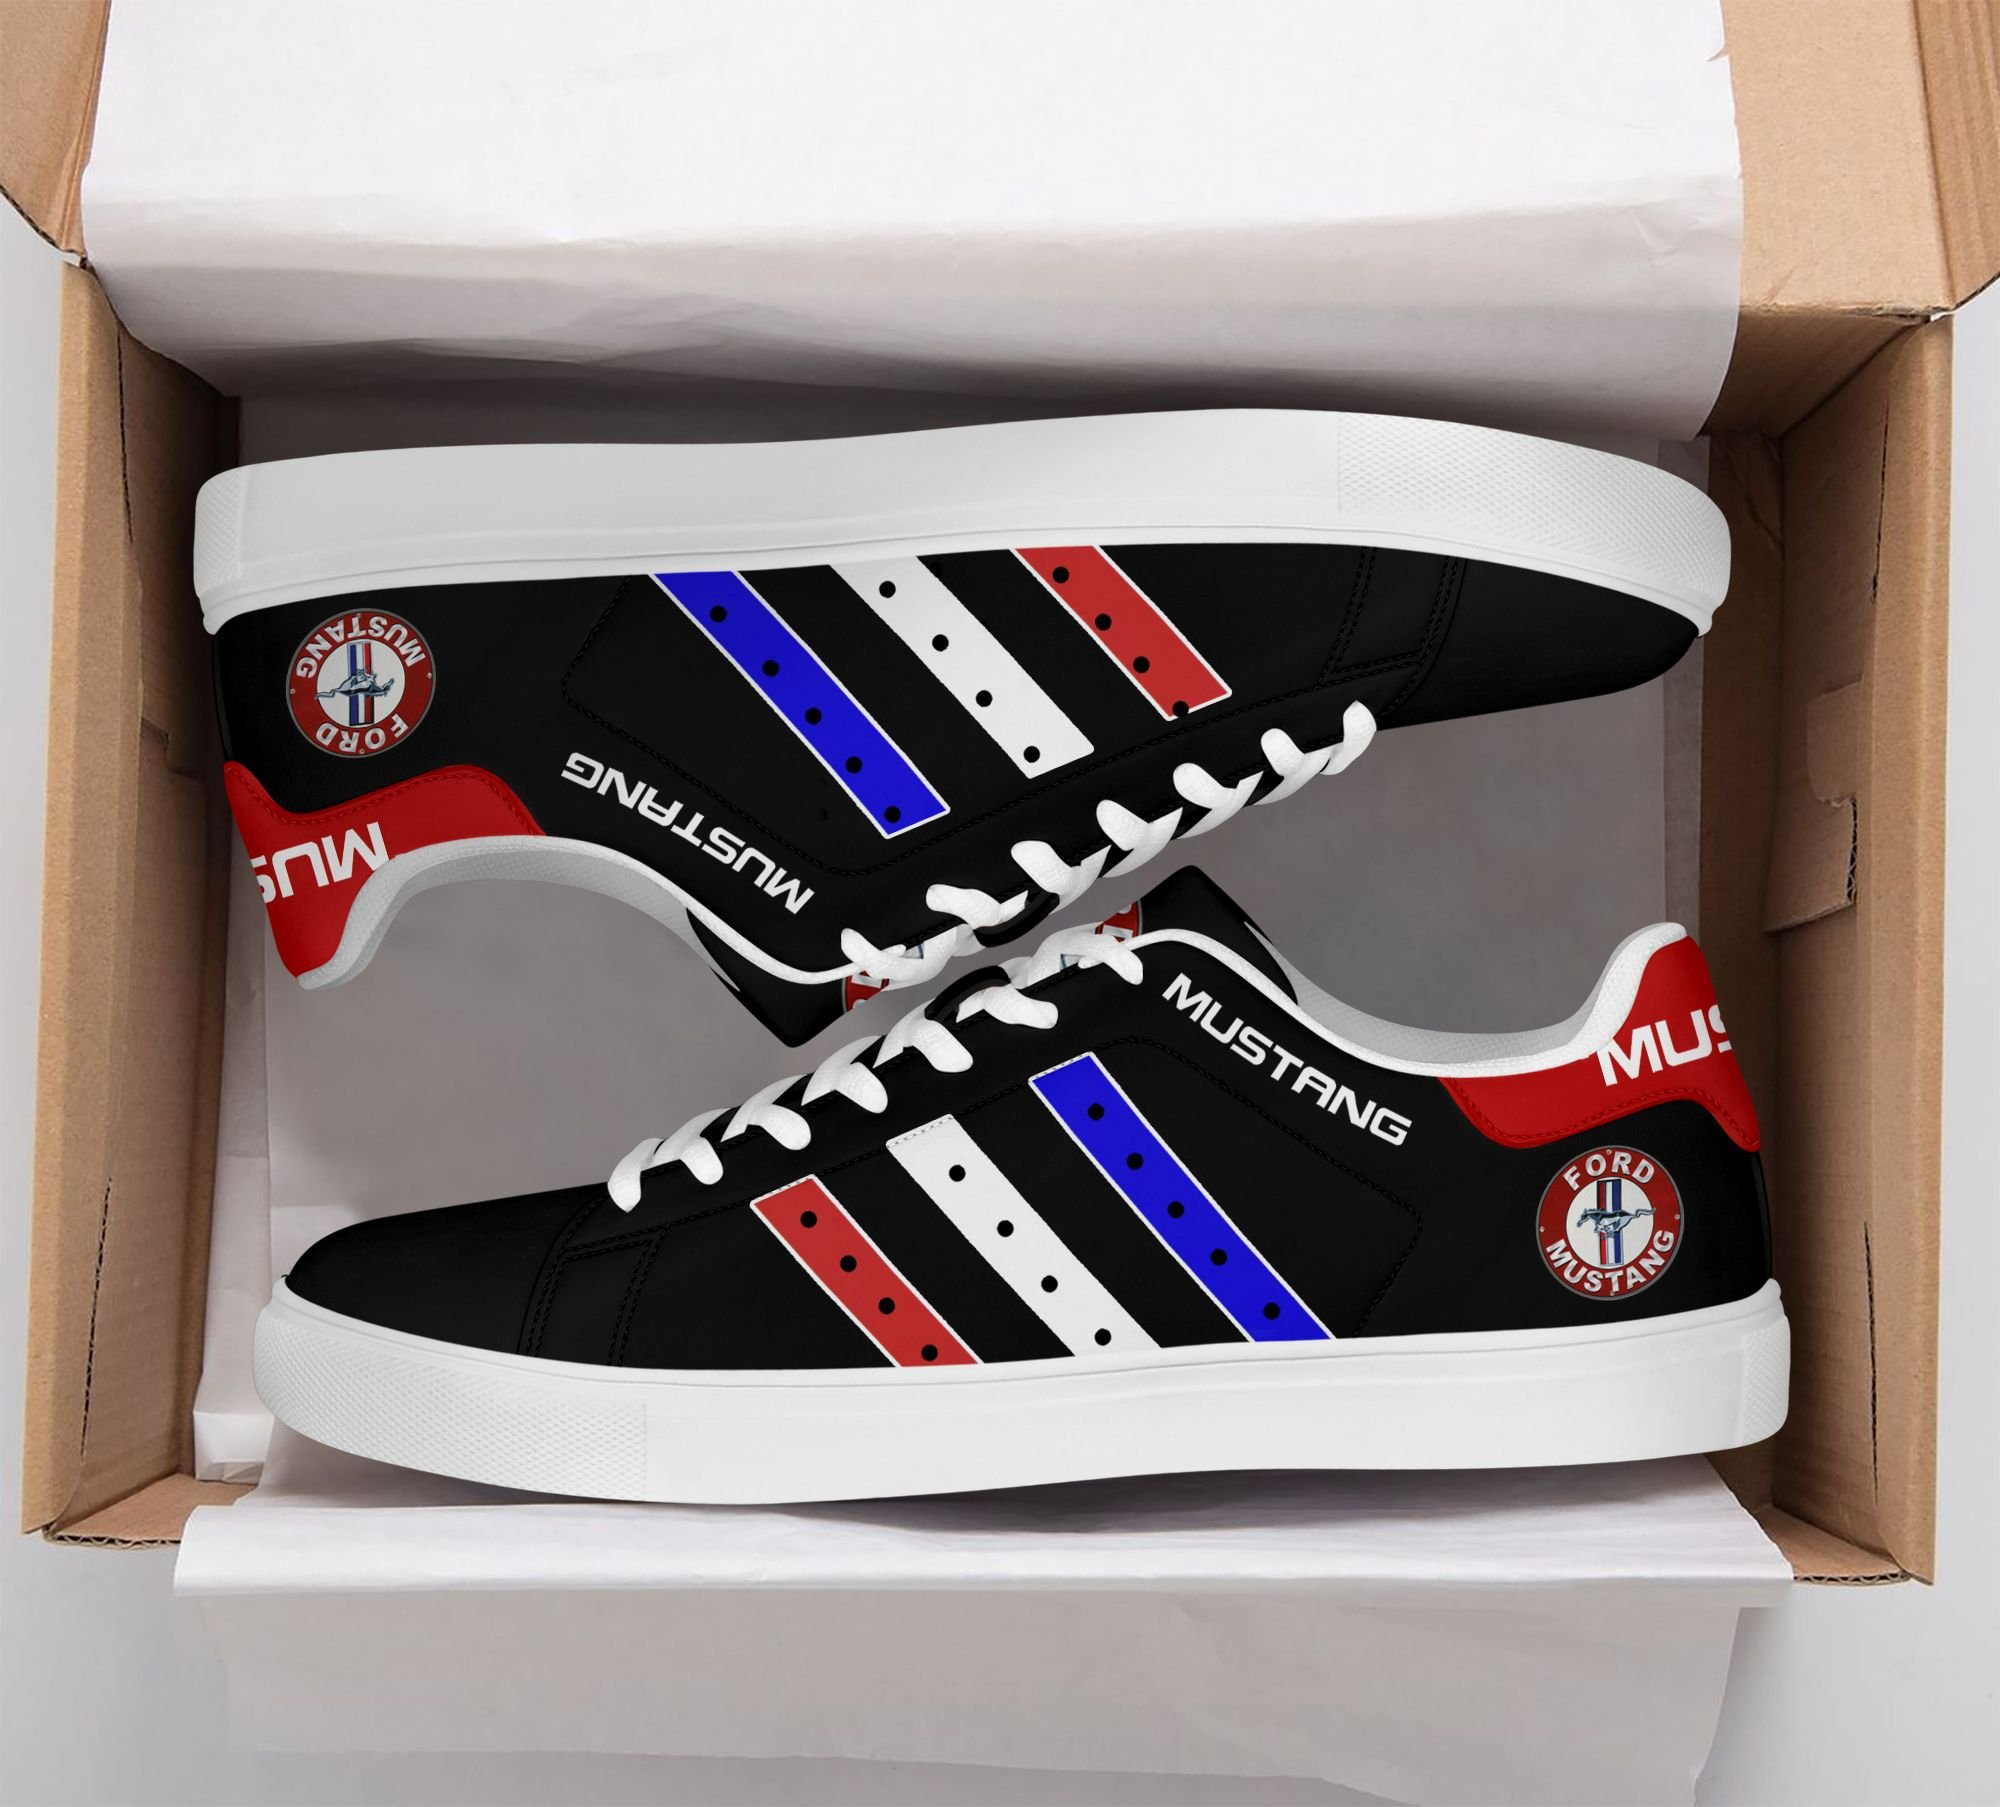 Ford Mustang stan smith shoes